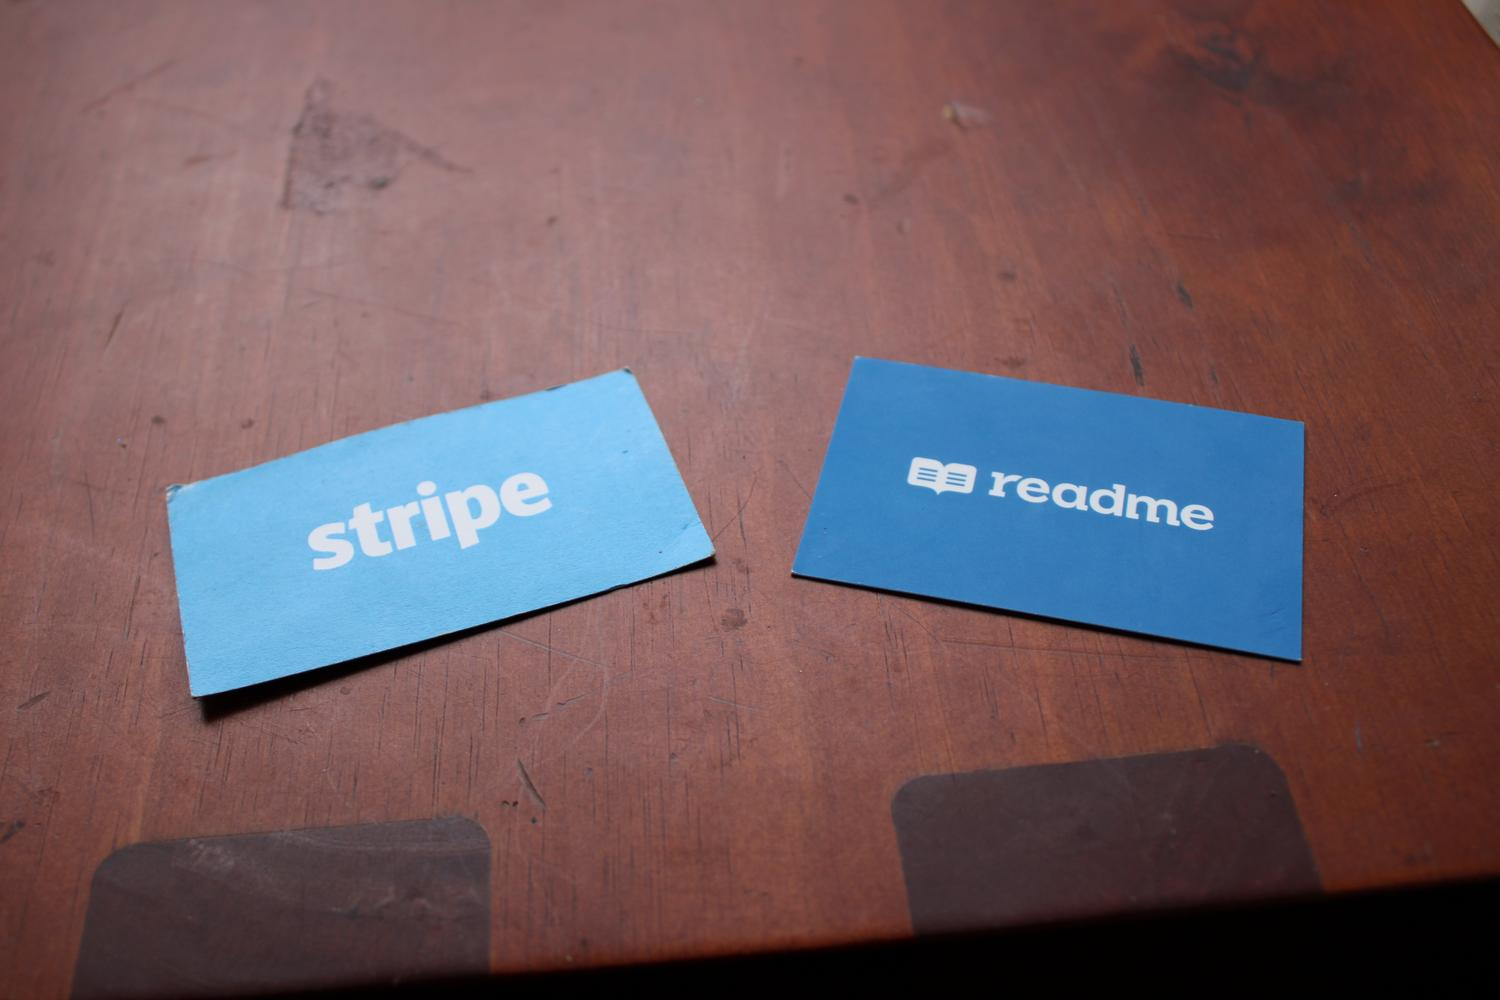 A close up photo of two business cards. One is for stripe.com and another is for readme.com.